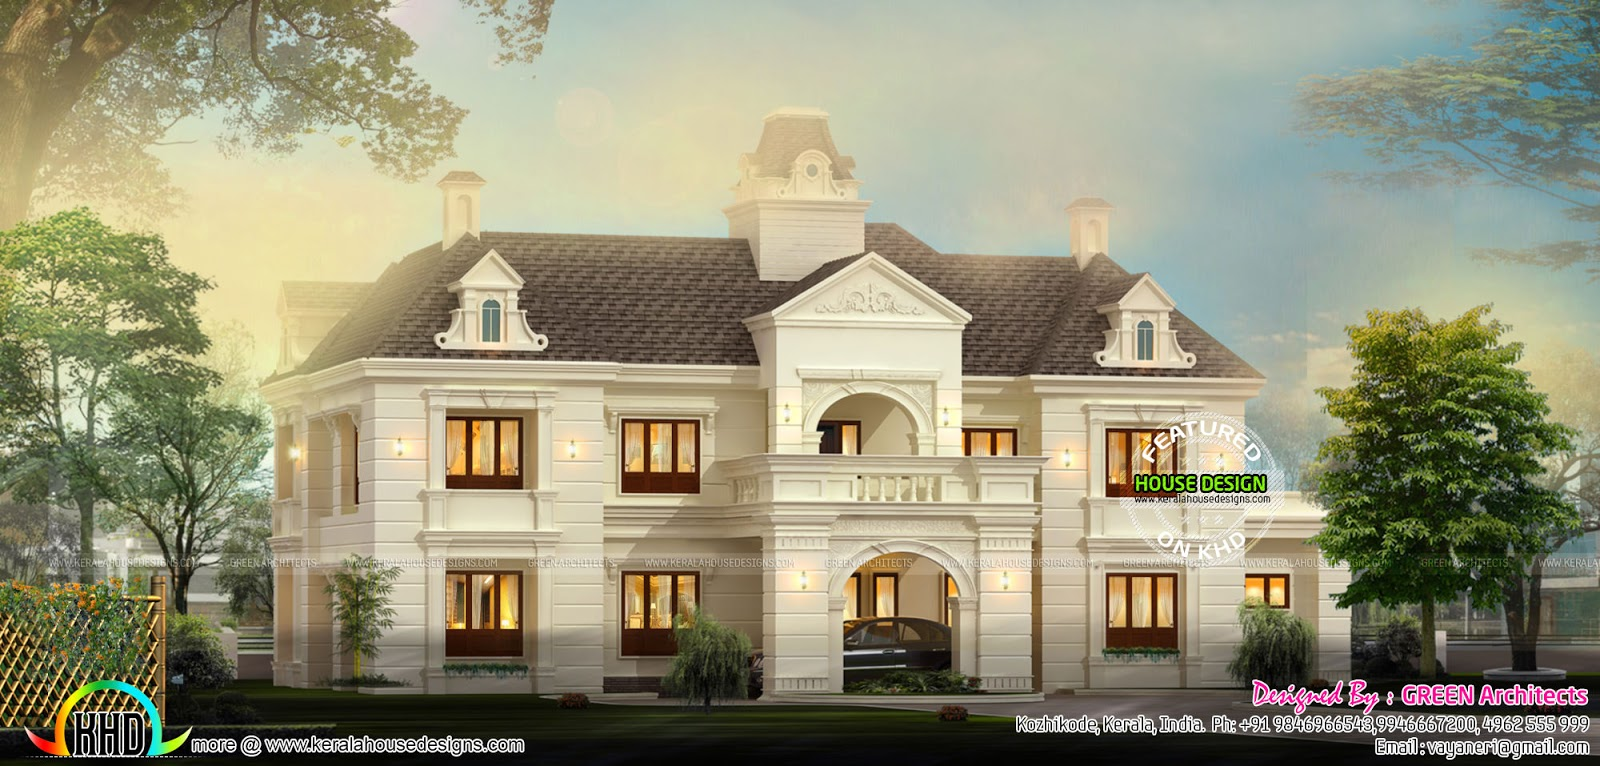 French style home architecture kerala home design and for French style house plans